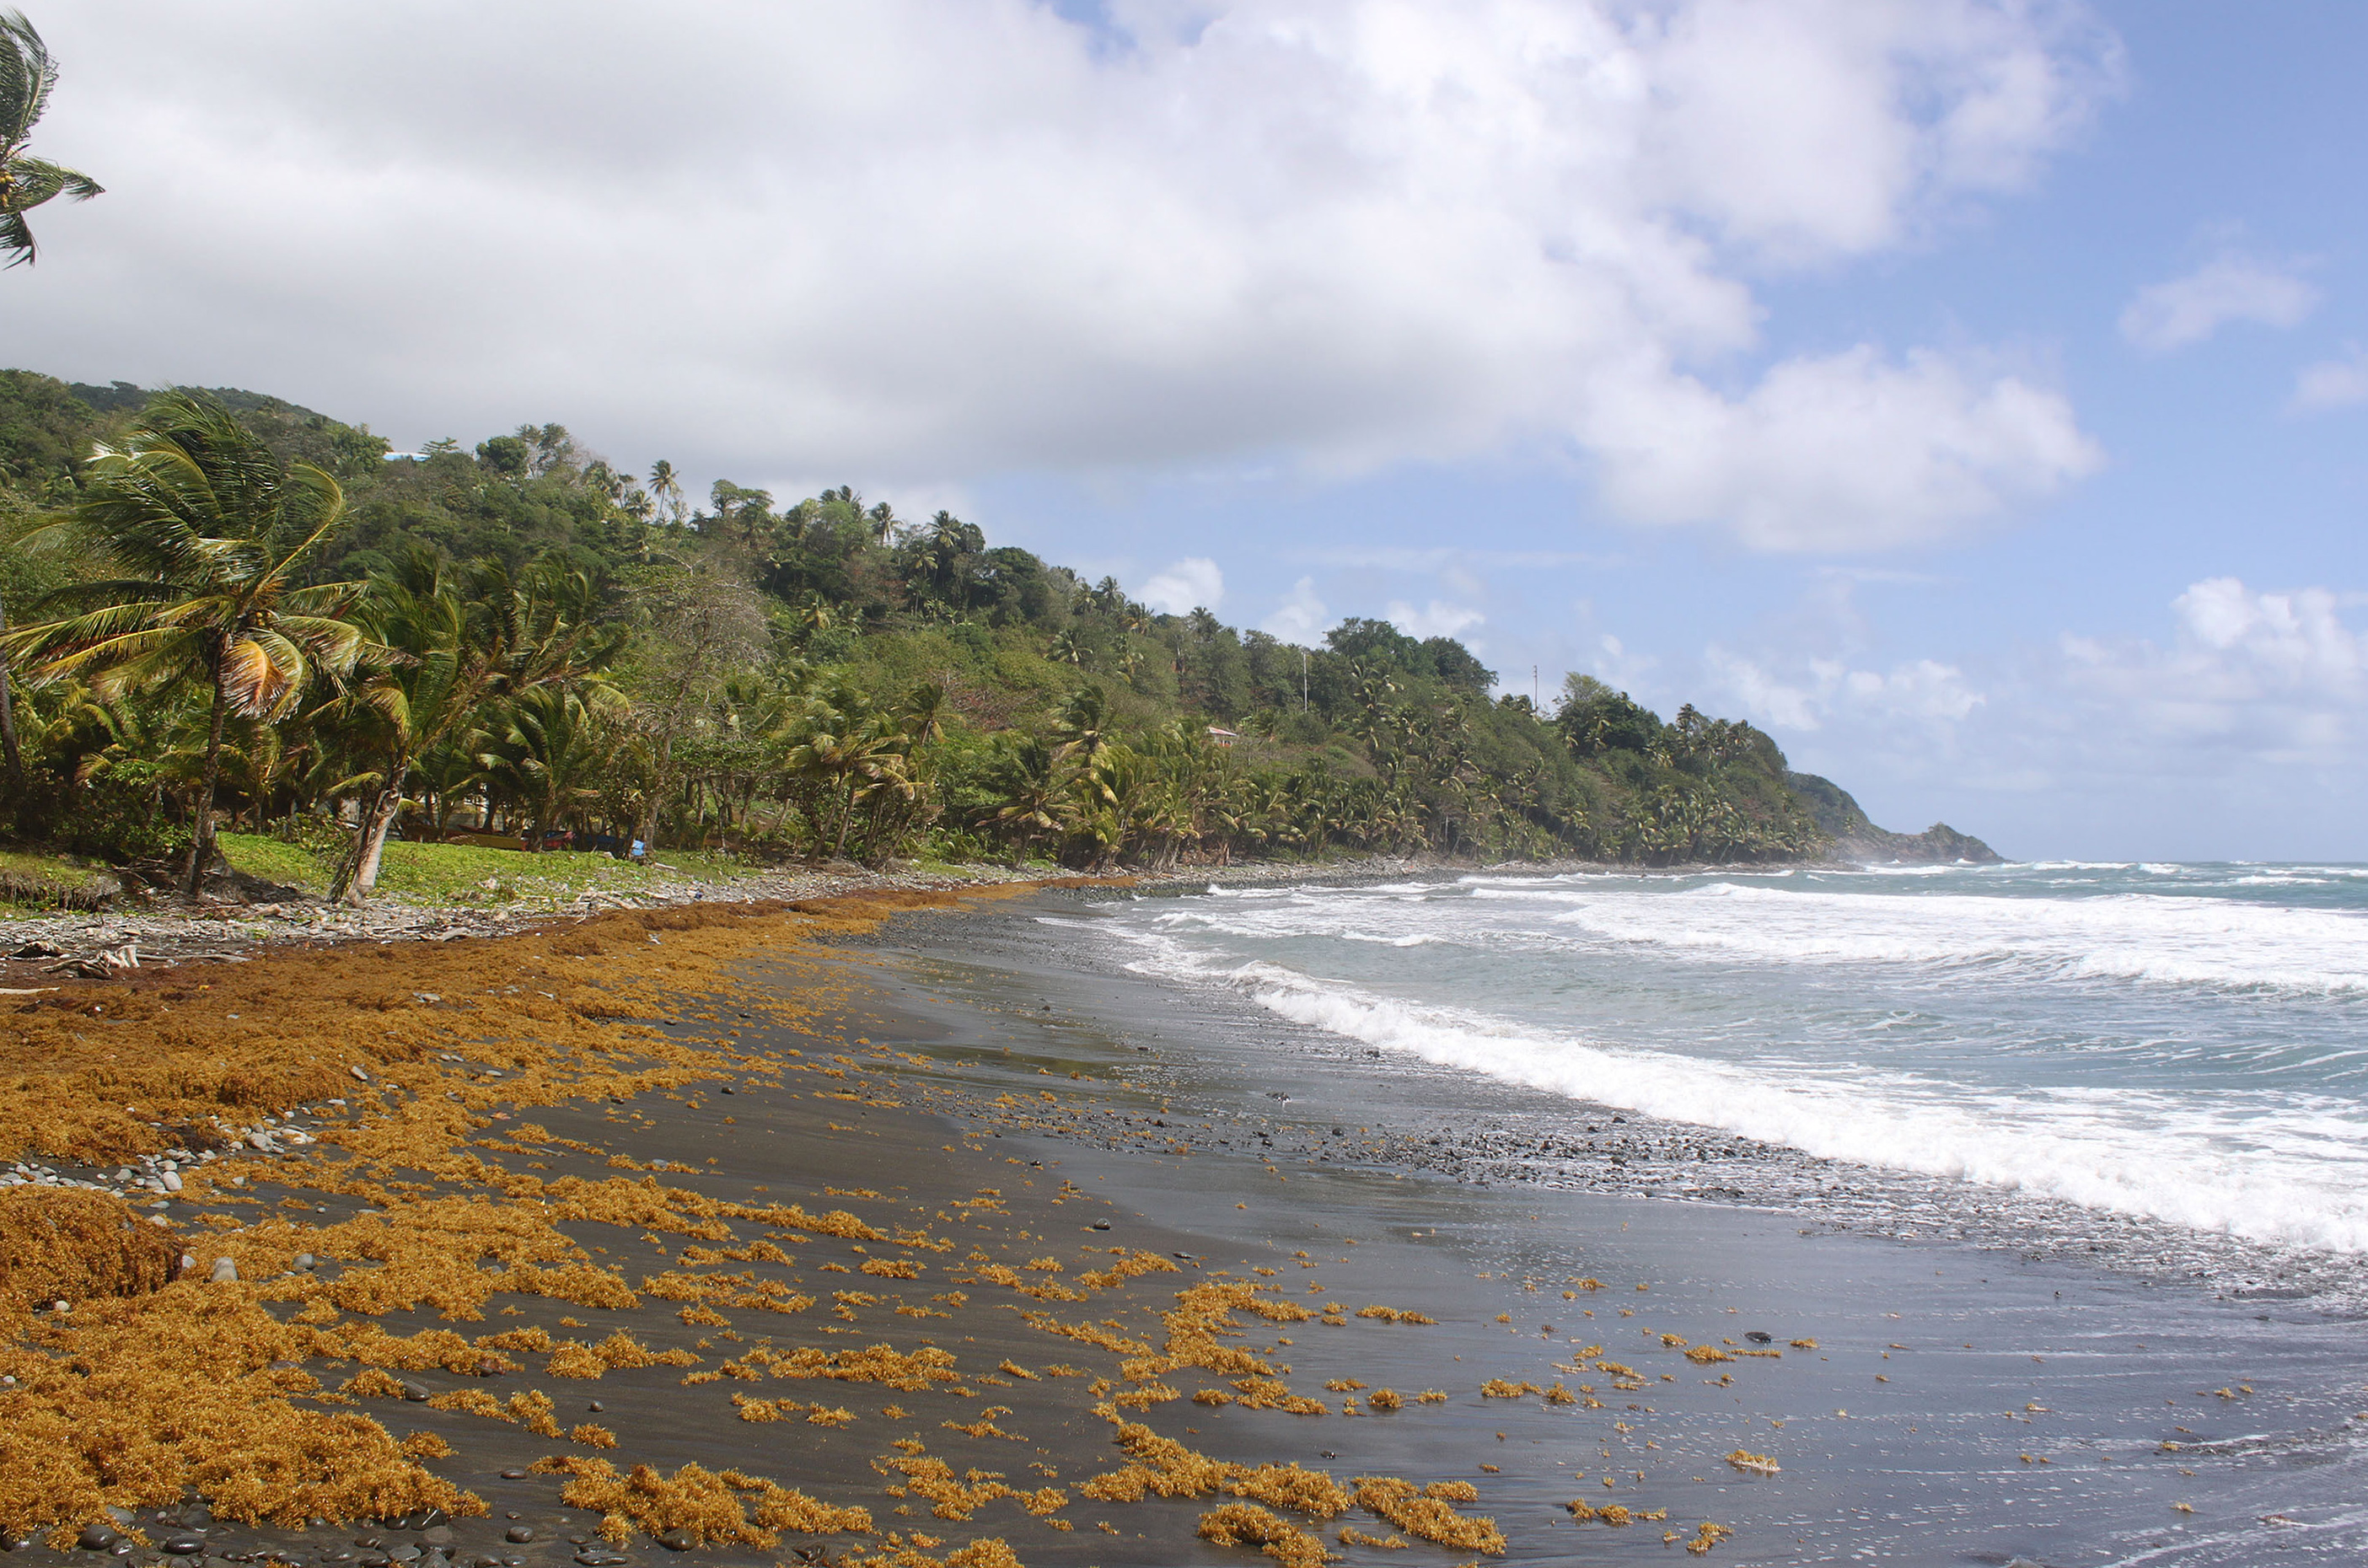 Windstar Caribbean, Black sand beach, Dominica